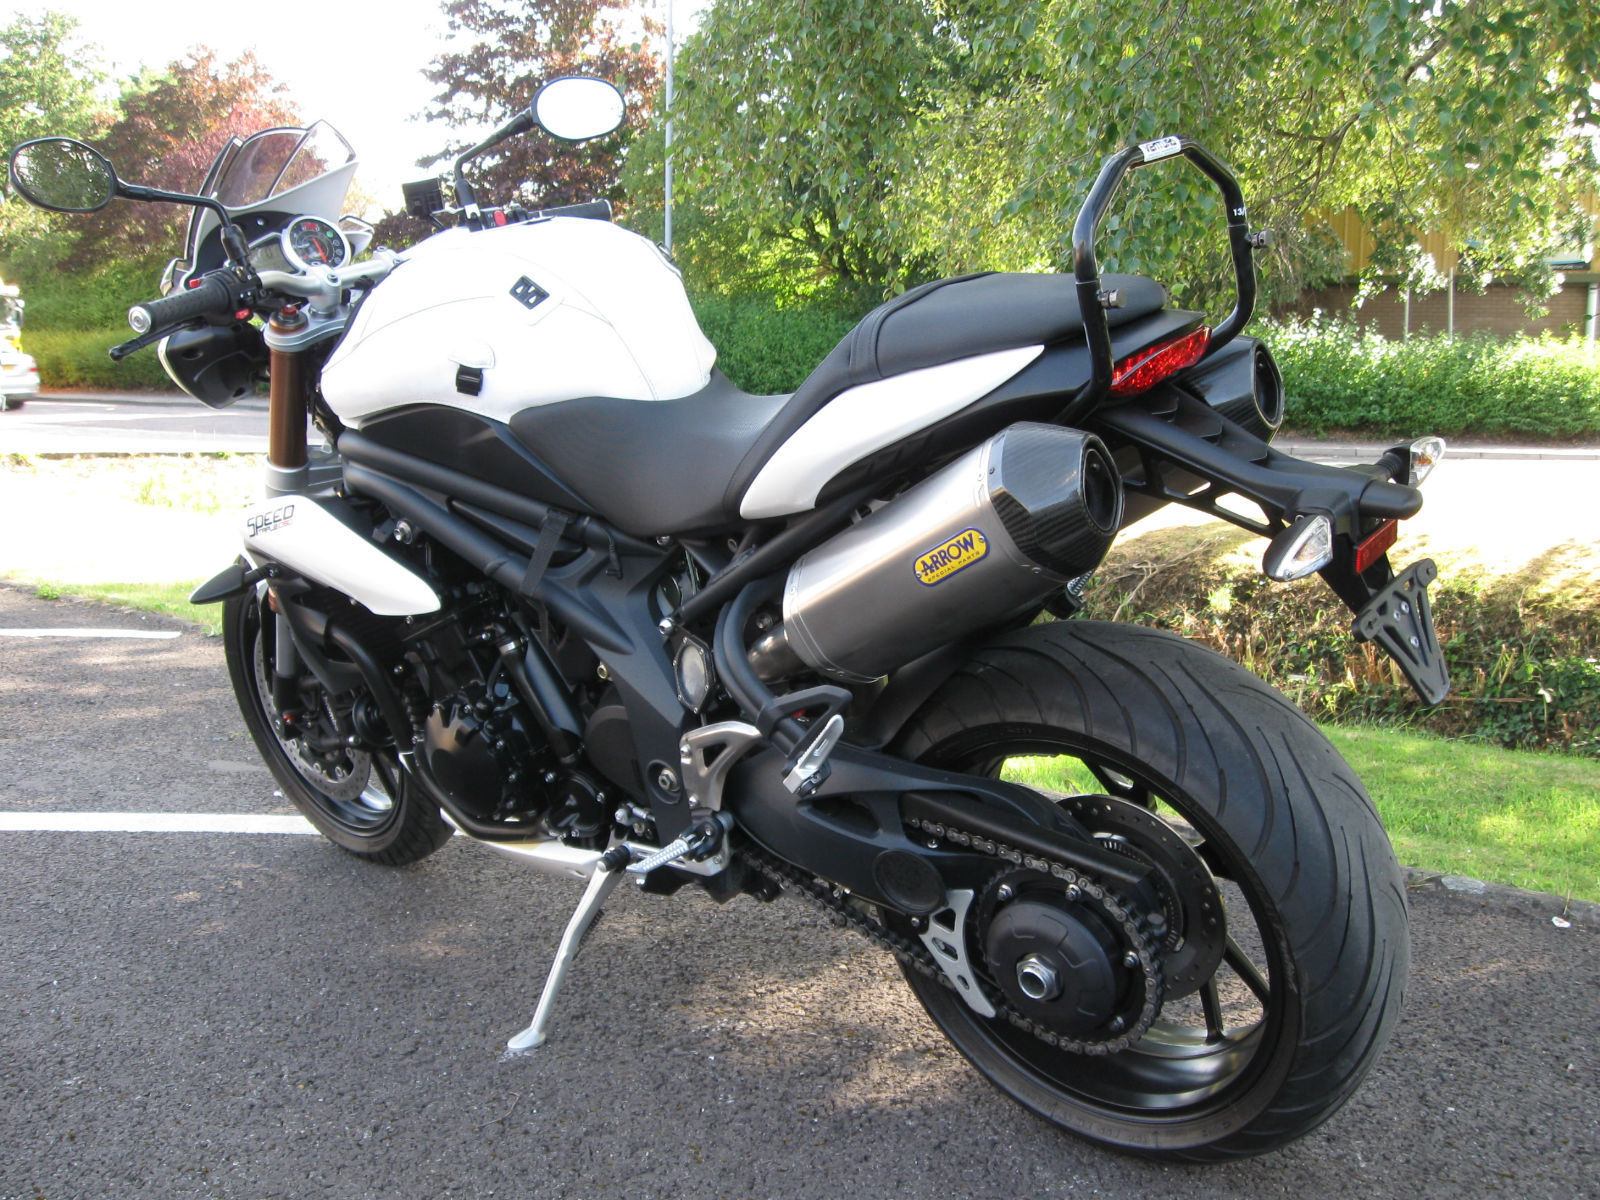 triumph speed triple 1050 abs 11 reg arrow cans ventura rack alarm. Black Bedroom Furniture Sets. Home Design Ideas